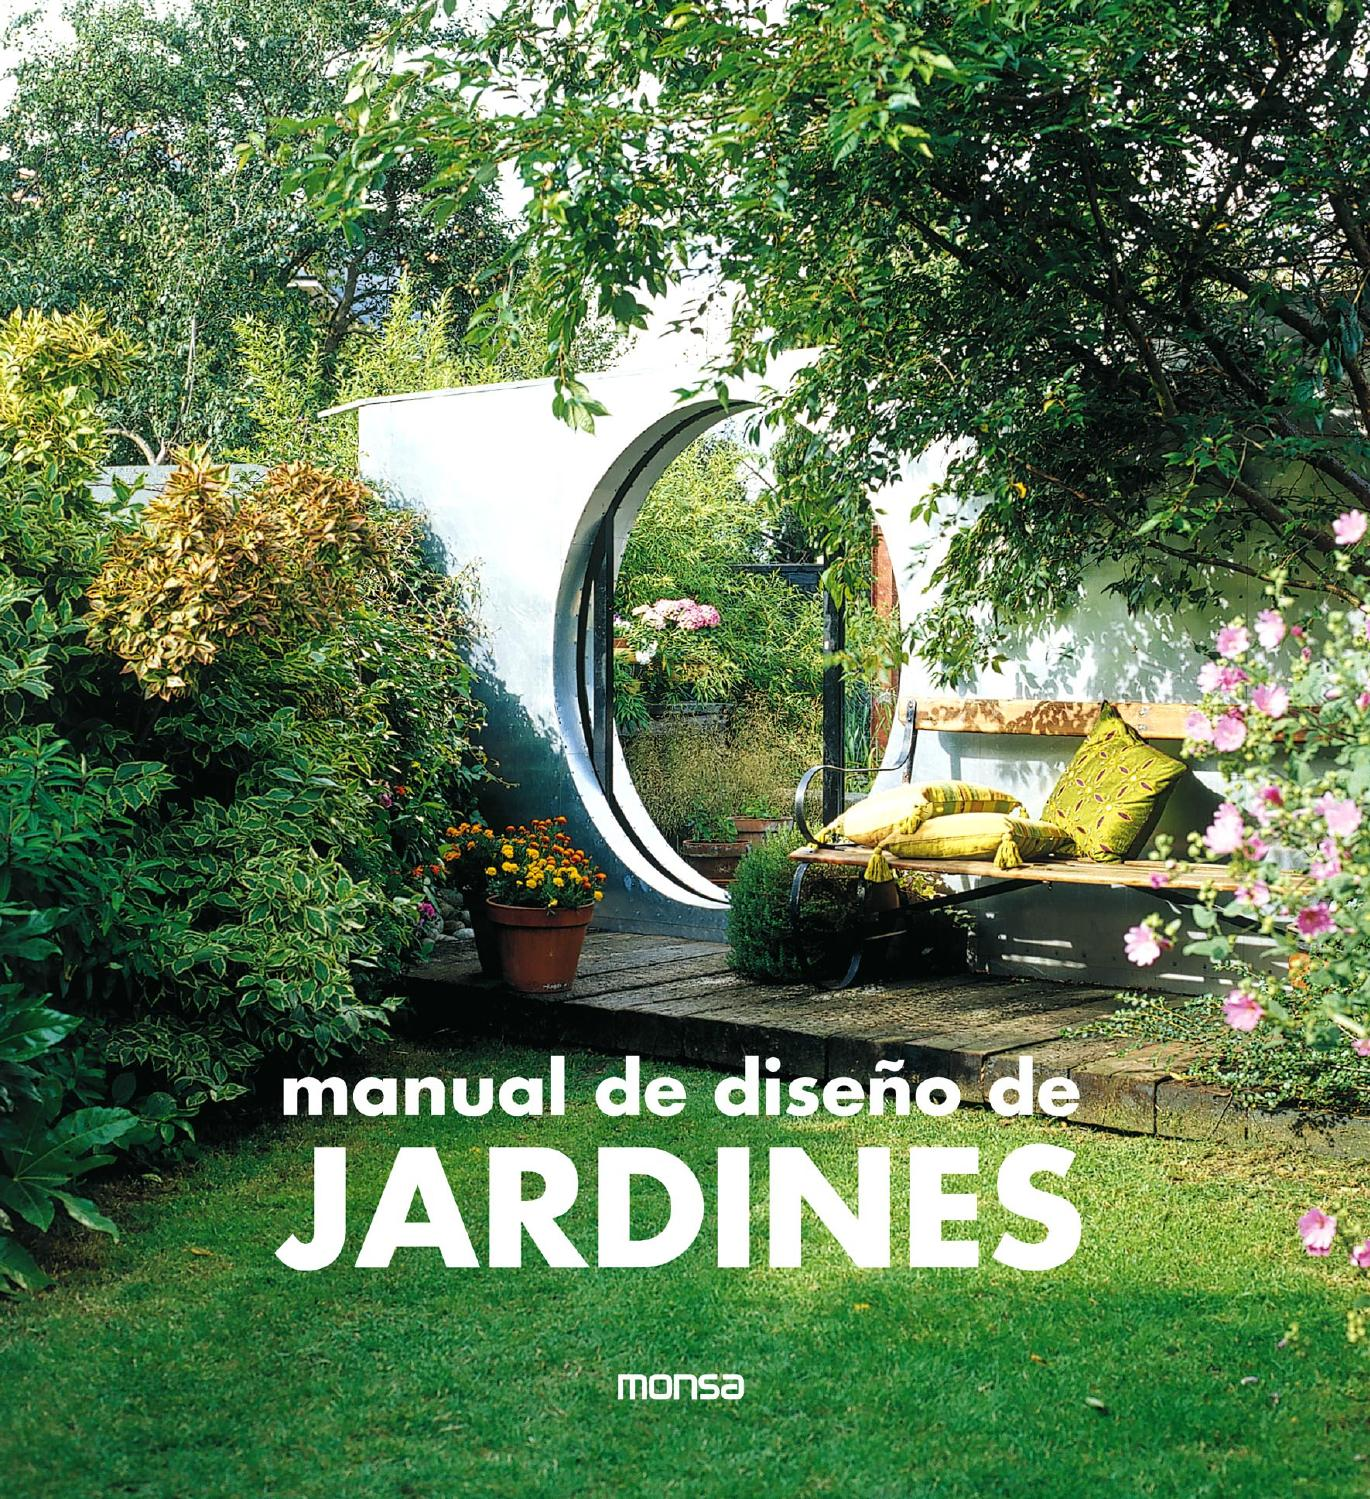 Manual de dise o de jardines by monsa publications issuu - Diseno de jardin ...